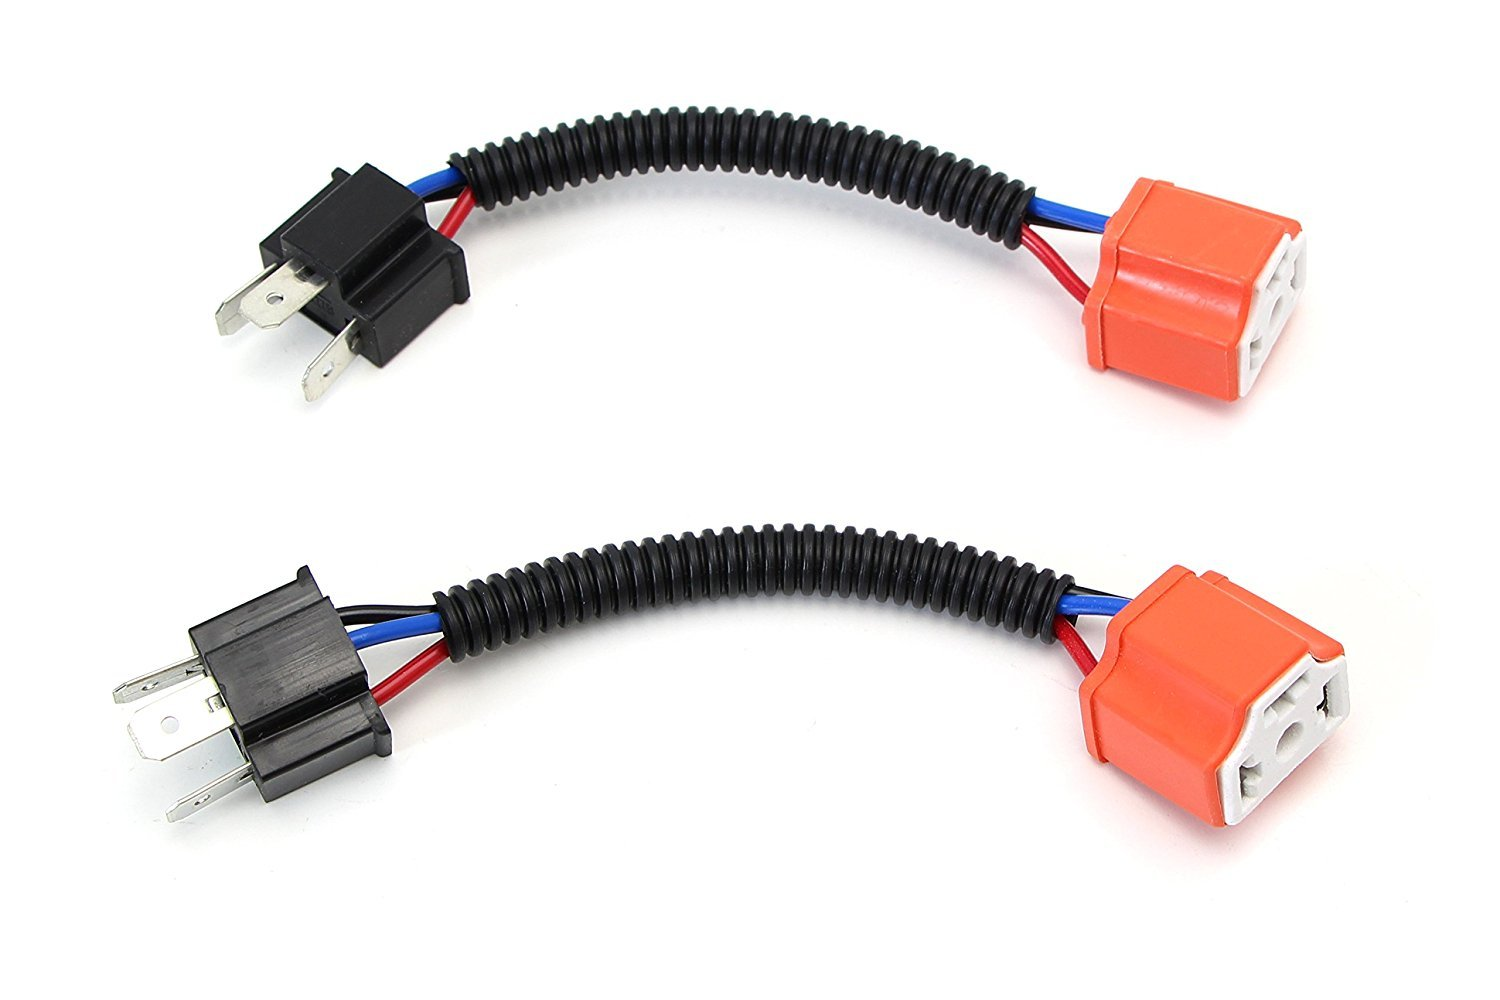 Lanlan 1pcs H4 9003 HB2 Pigtails Heavy Duty 14AWG Ceramic Wiring Harness Car Lamp Adapter Cable 1pcs Update